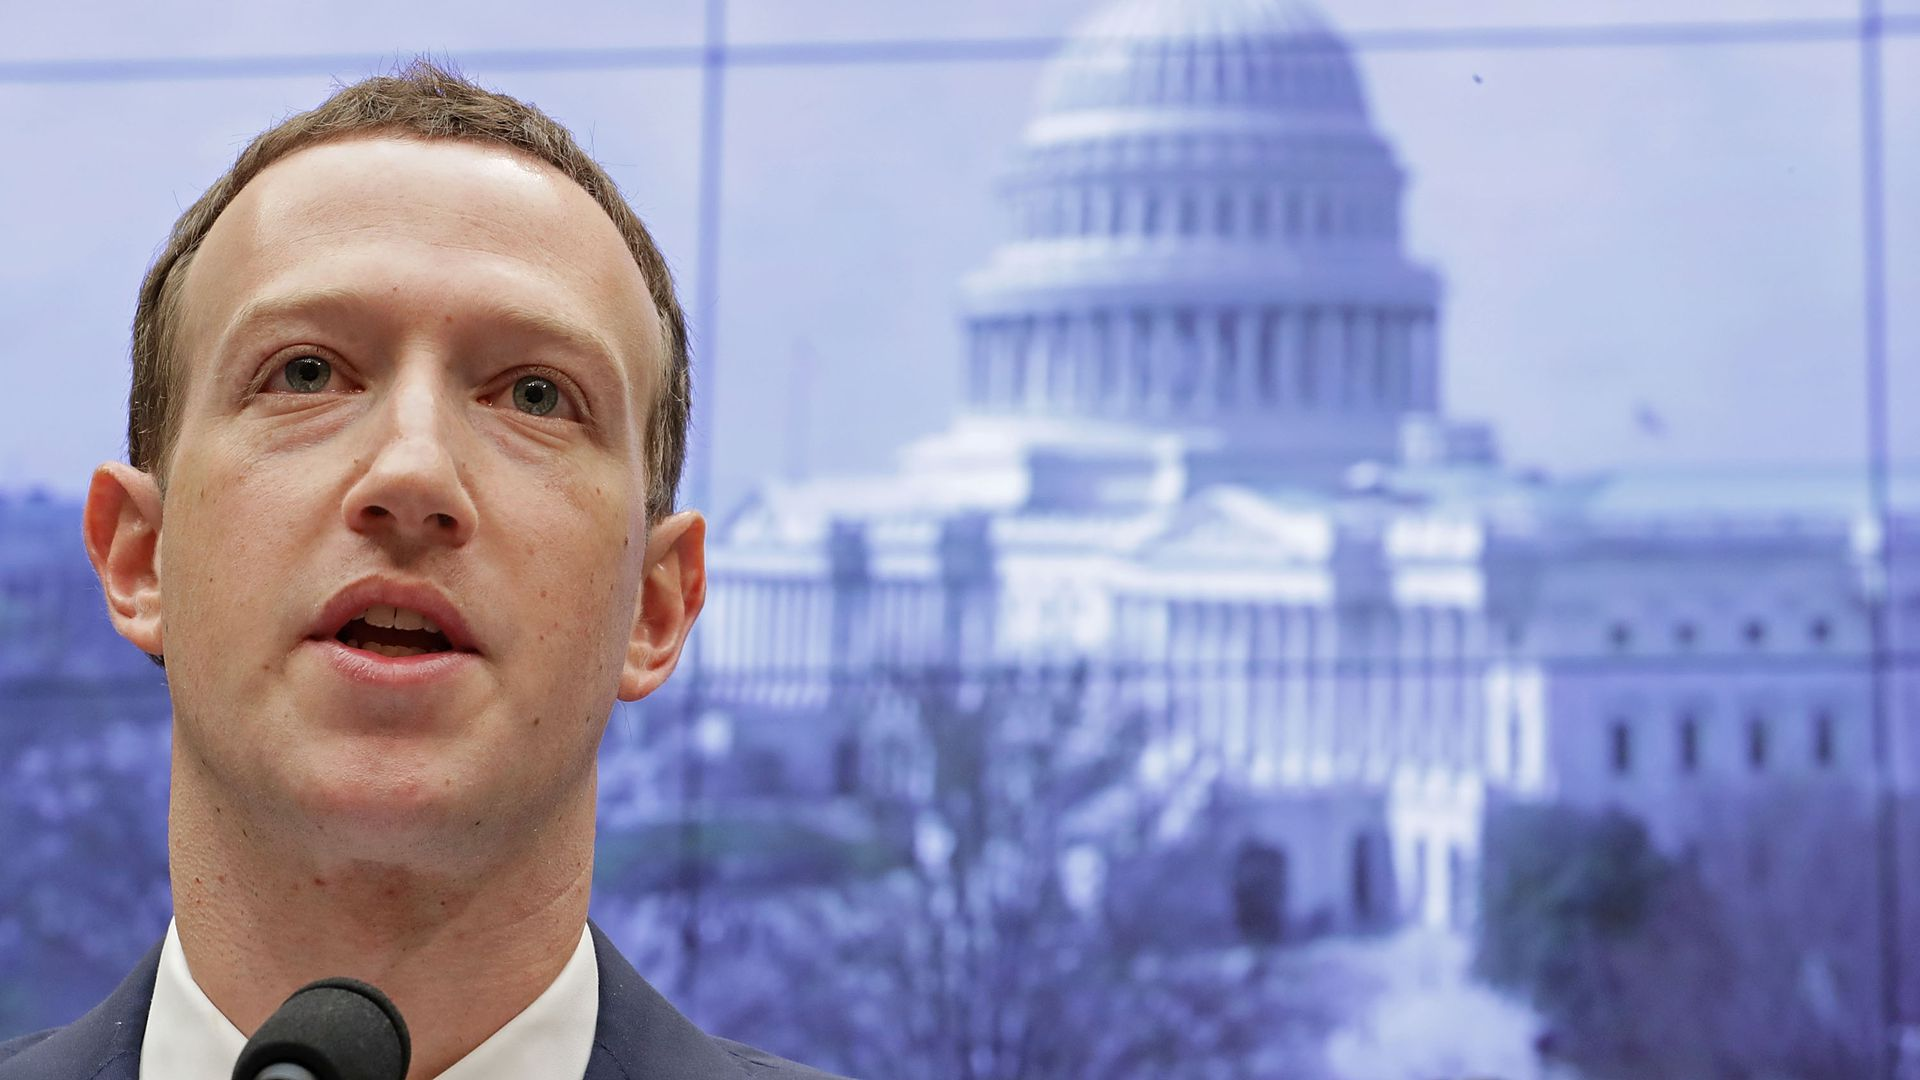 Mark Zuckerberg to testify before Congress about Facebook's cryptocurrency Libra